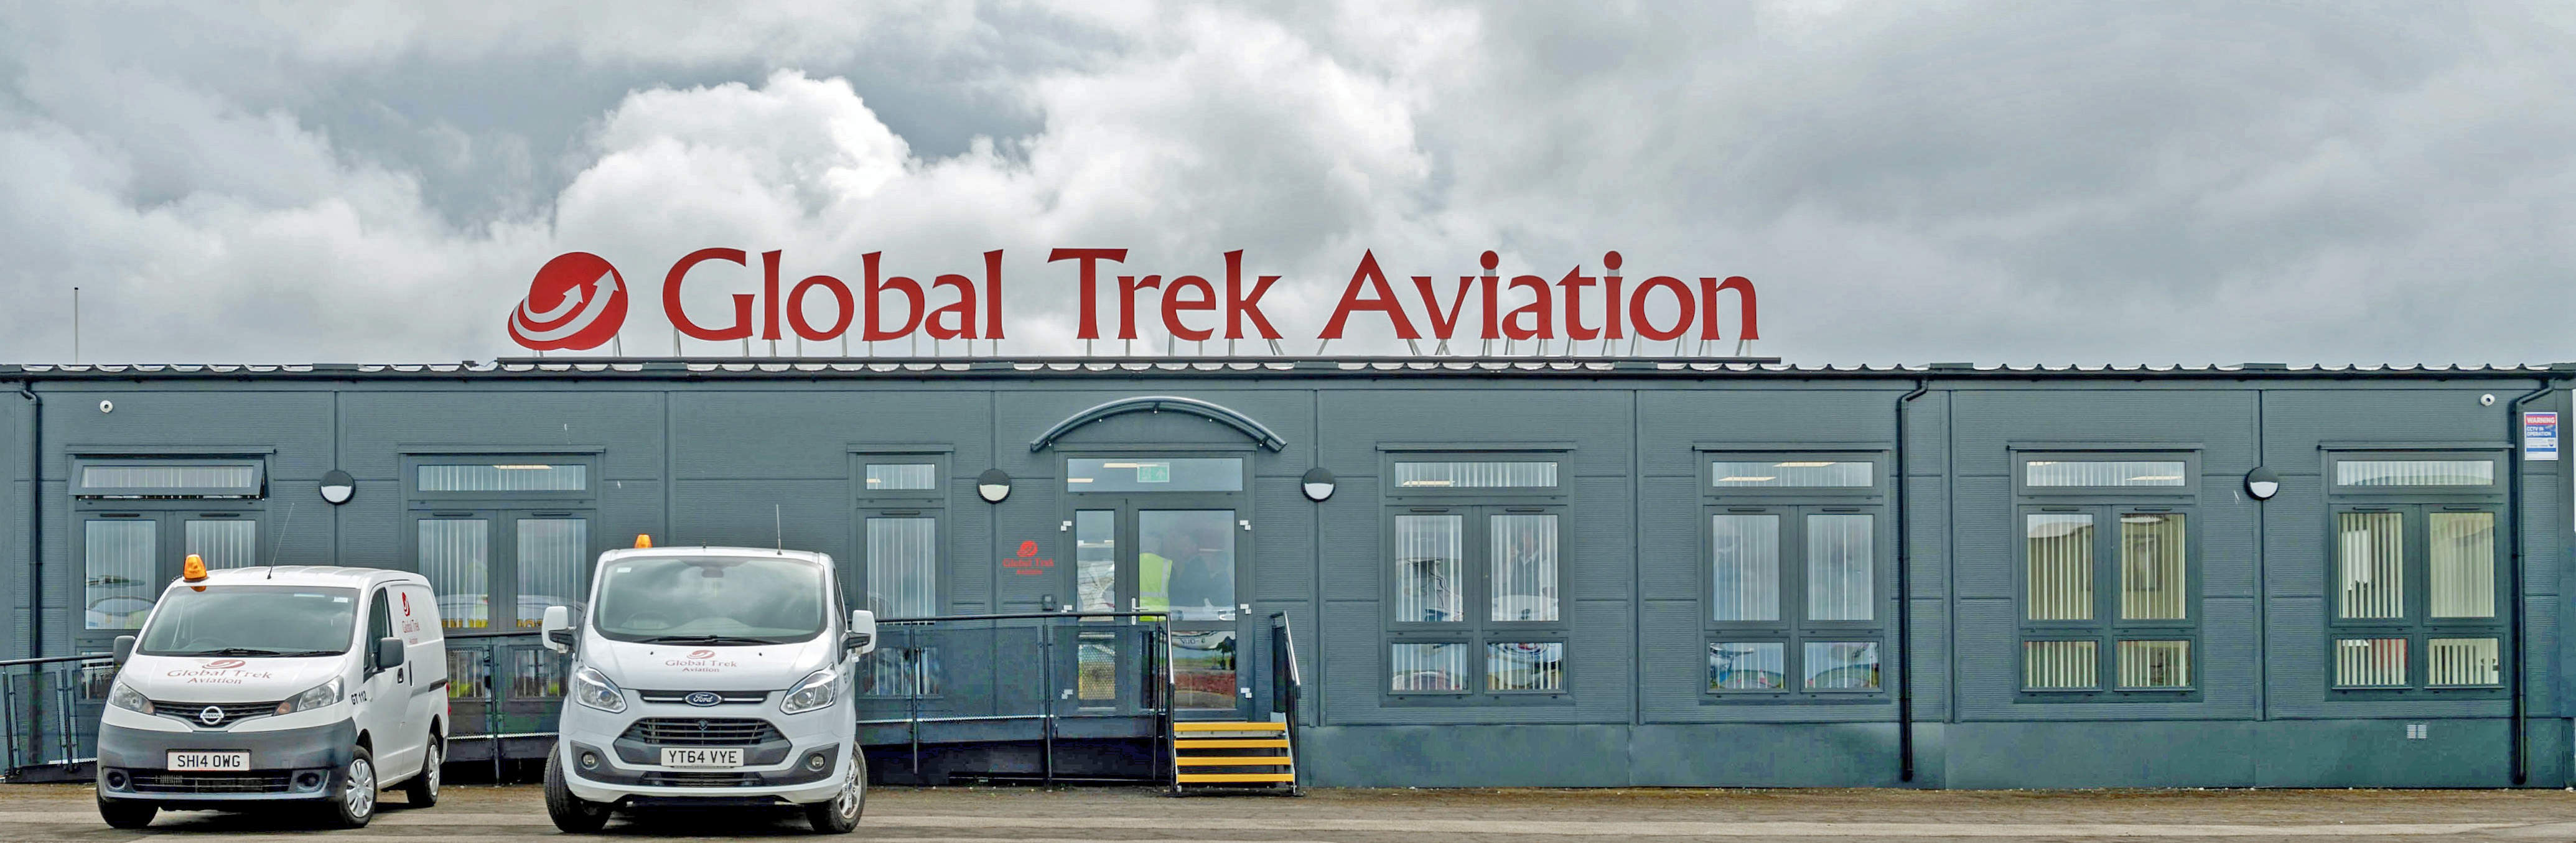 Global Trek Aviation - Official Opening of Executive Jet Centre, Cardiff International